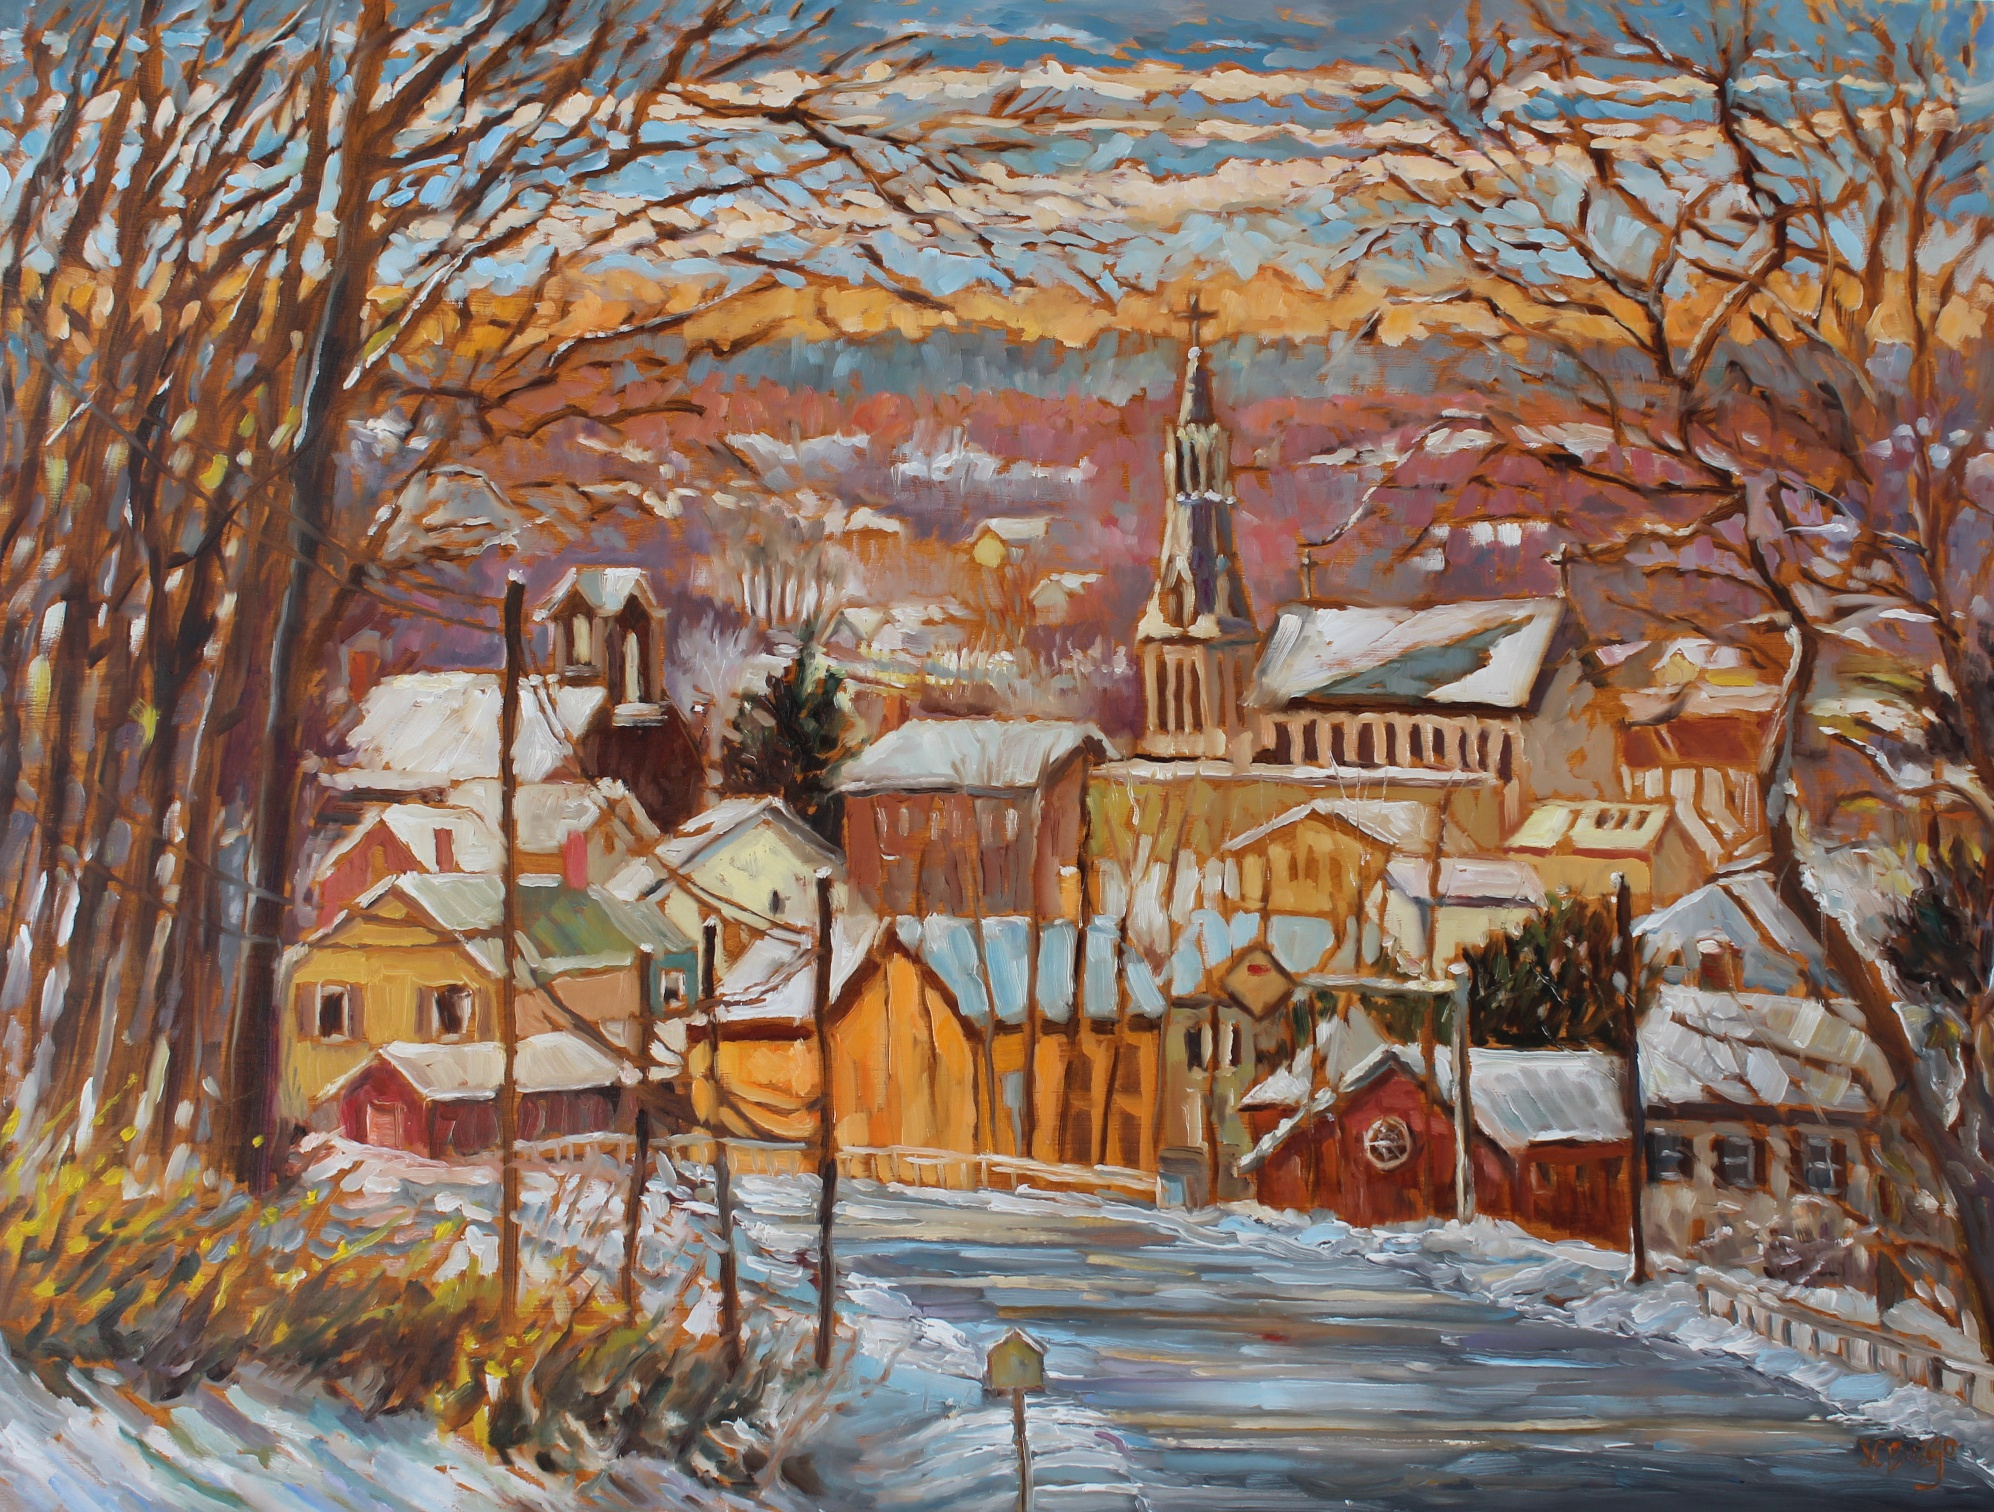 Lambertville Overlook 2 - Winter